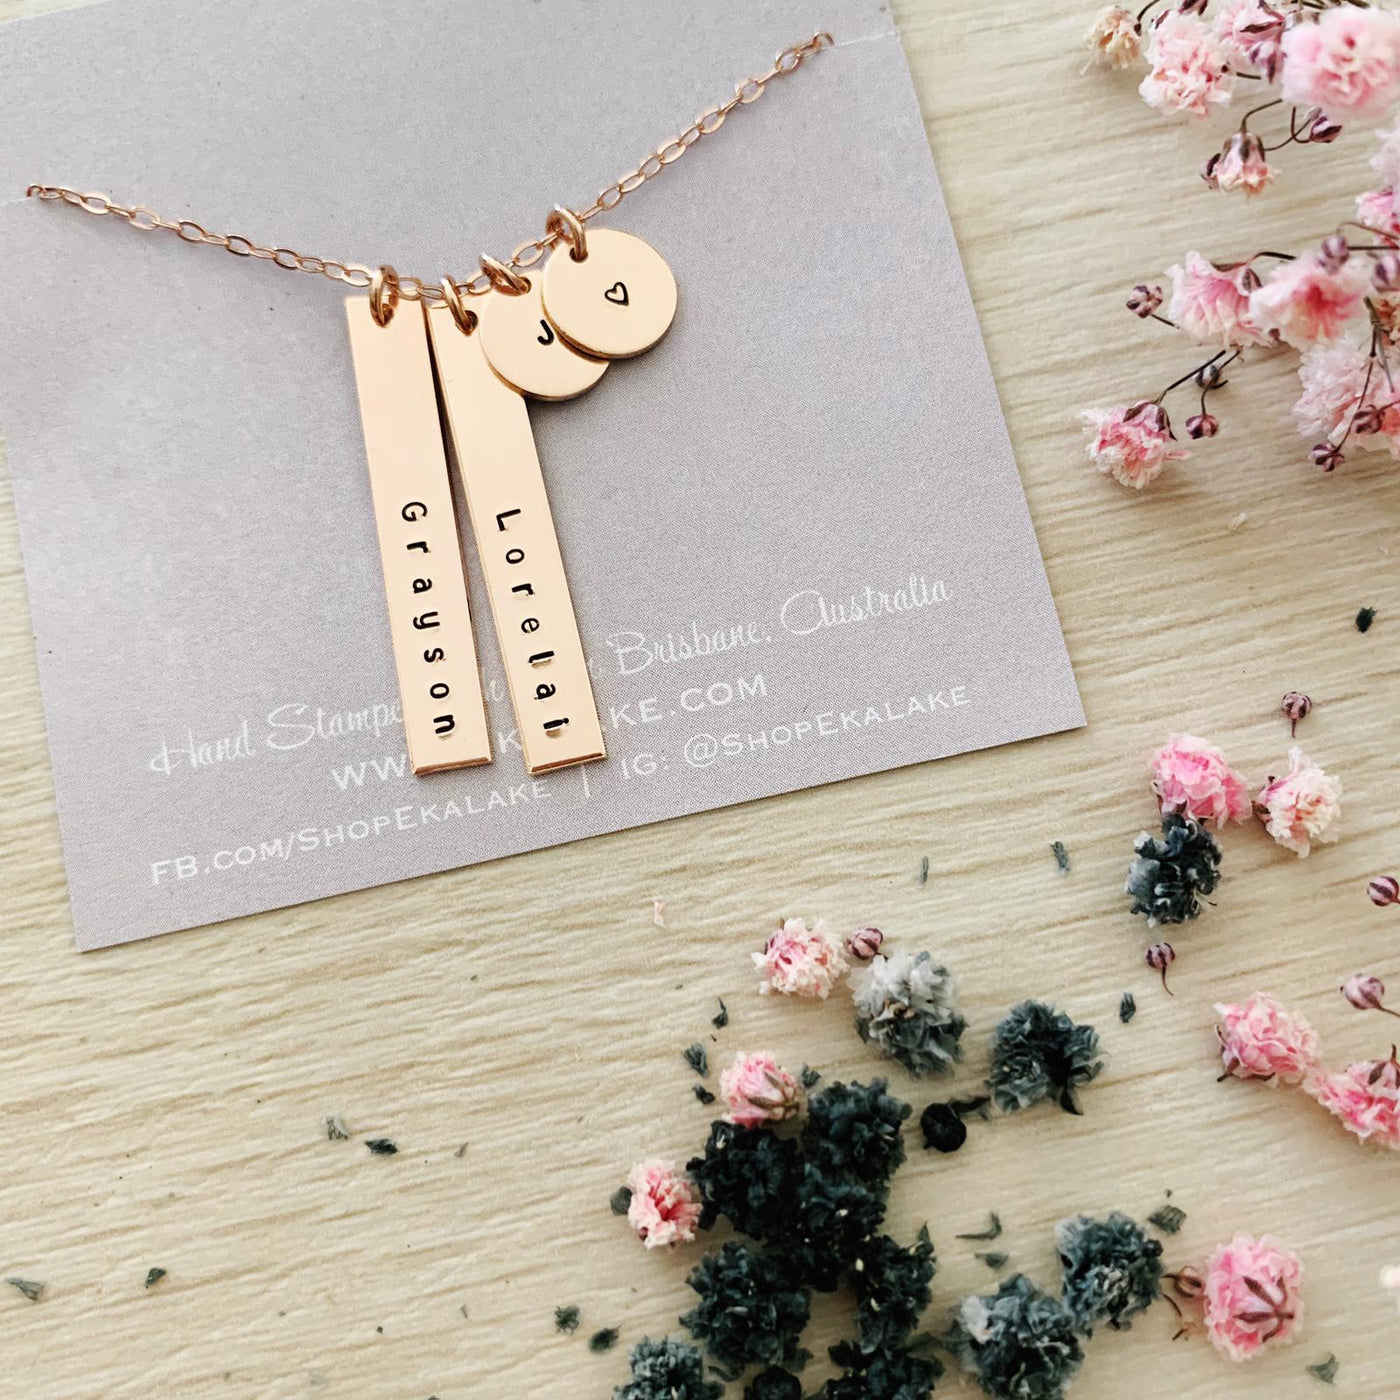 2 Names & 2 Initials Necklace - Petite Bars & Mini Discs - Ekalake Handmade Jewellery